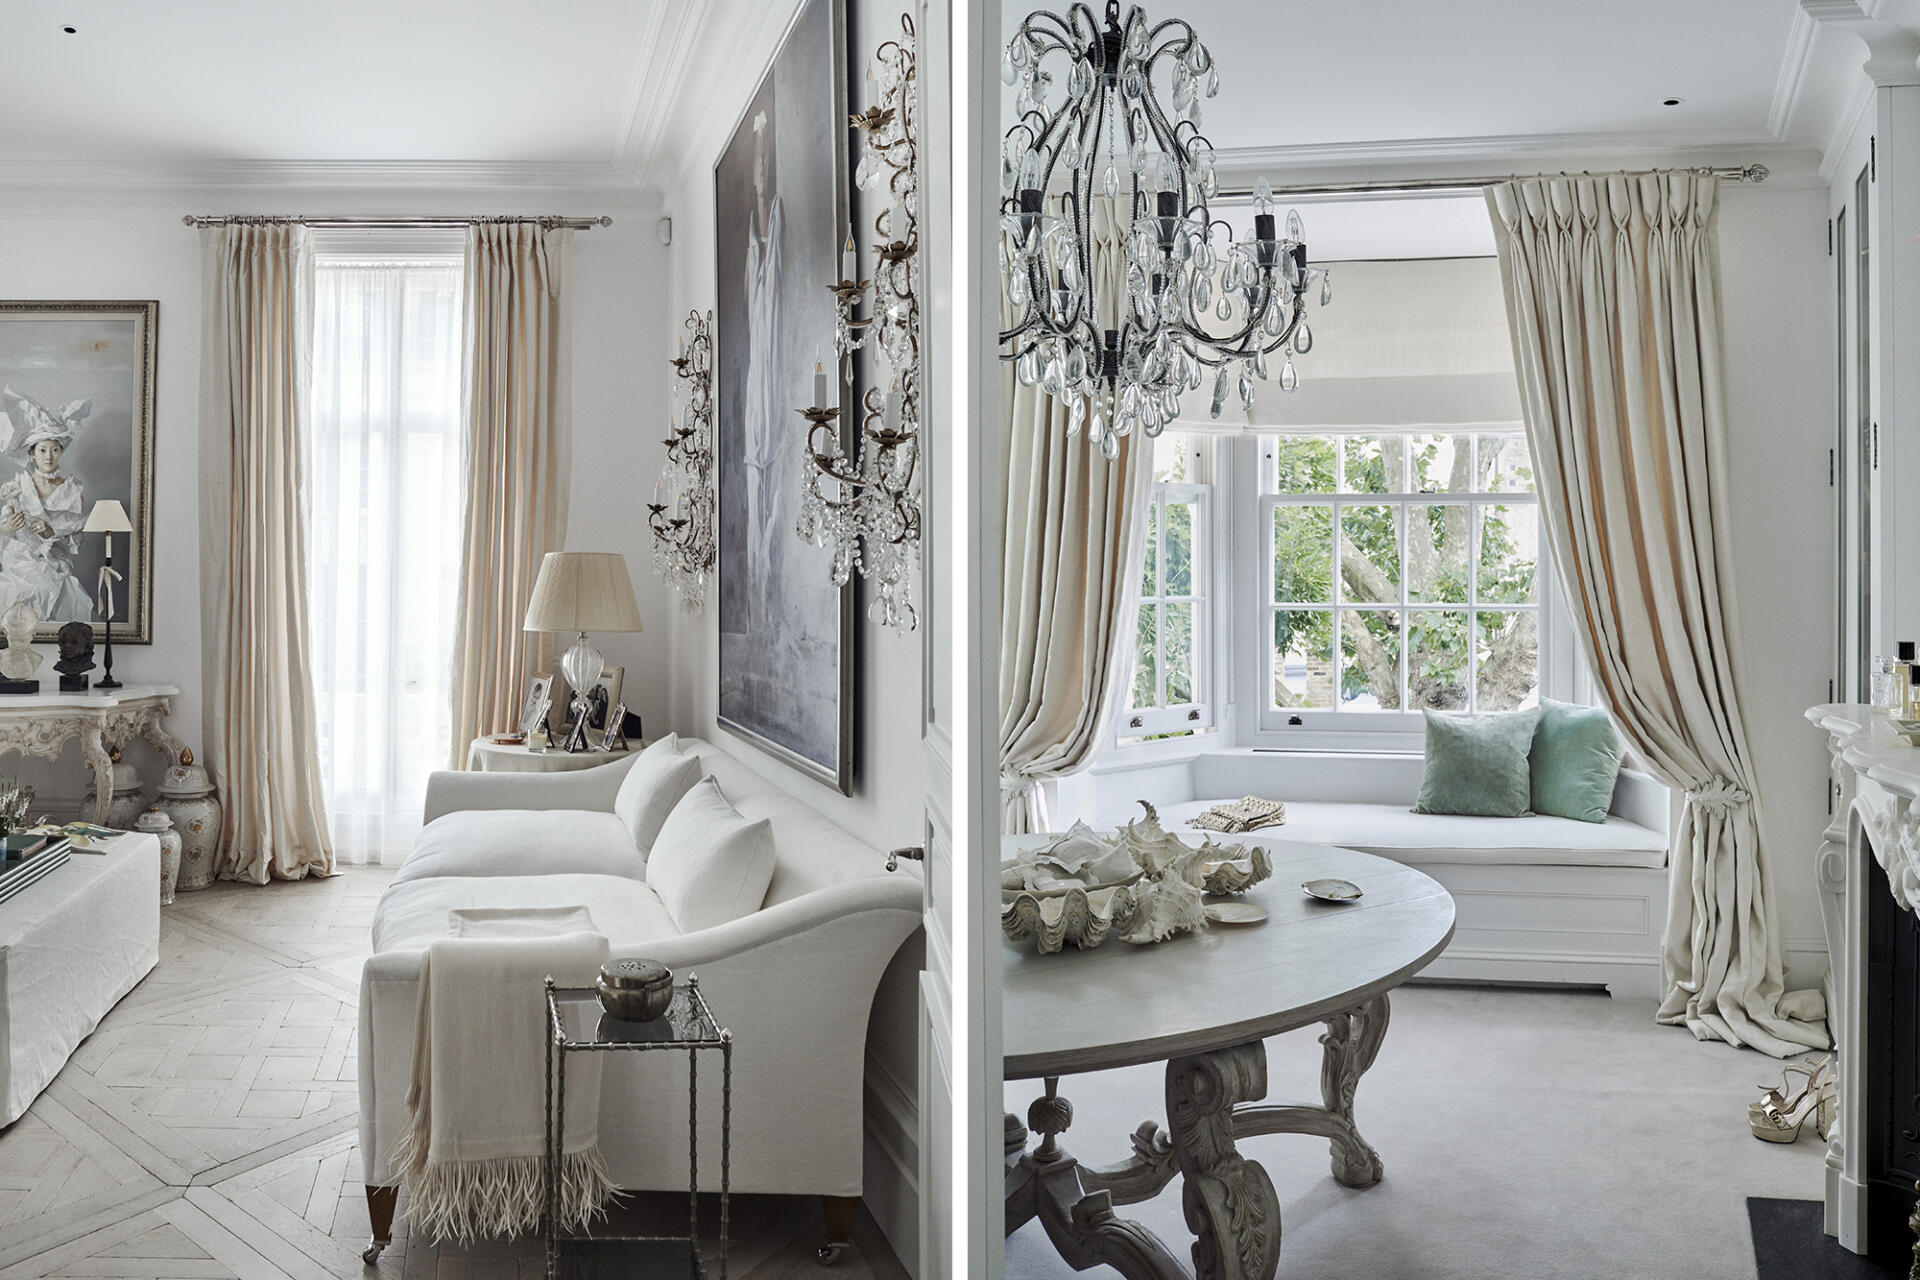 Alison Henry's London home with curtain rail and finials by Collier Webb